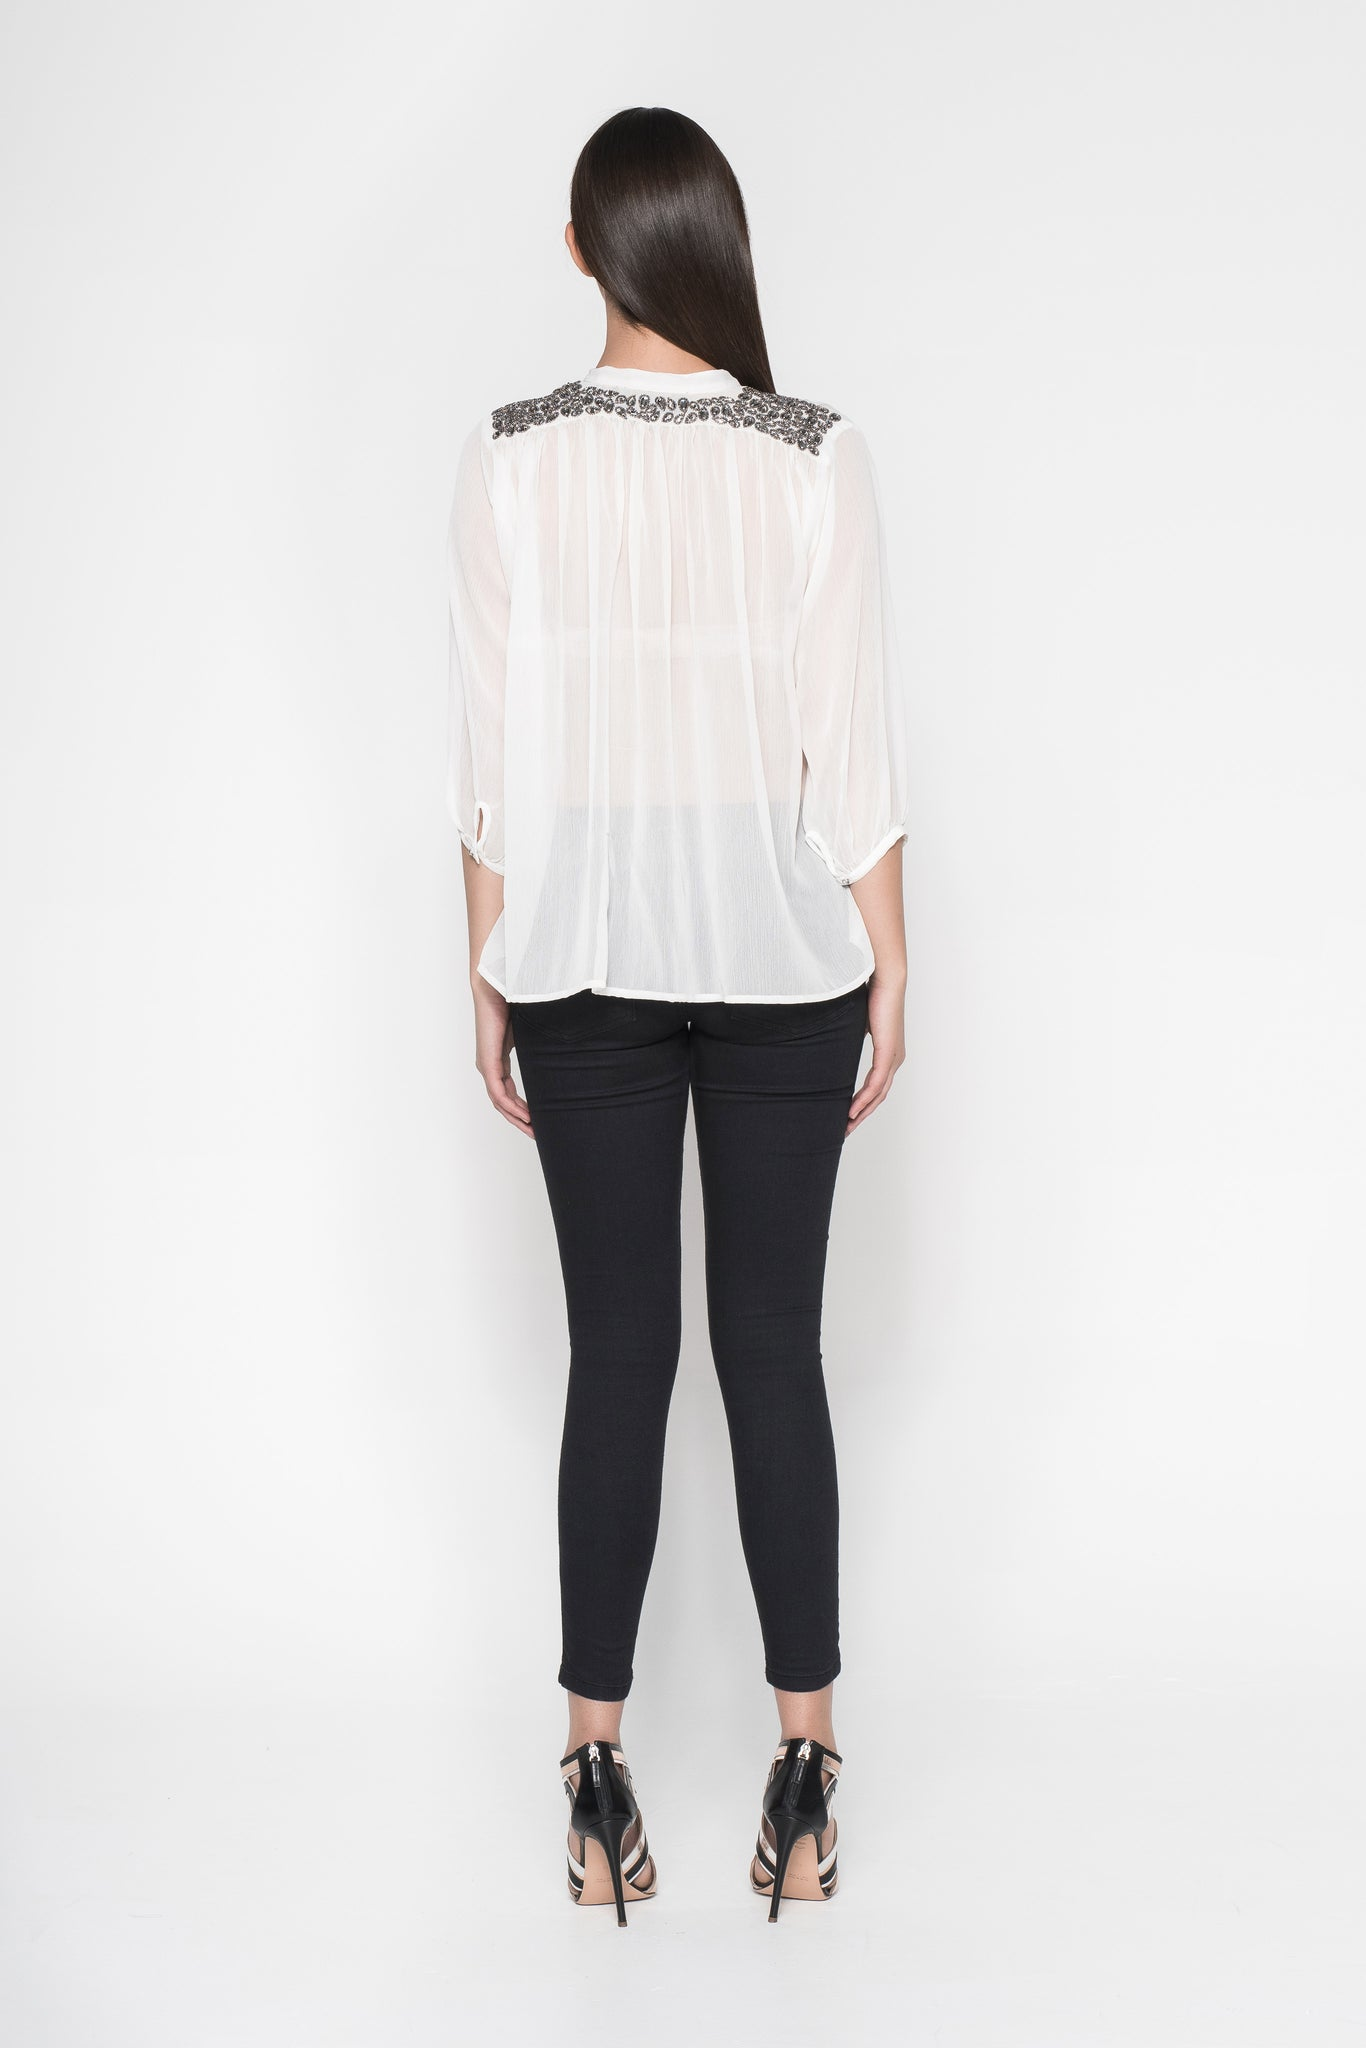 RHINESTONE BEADED SHEER SHIRT